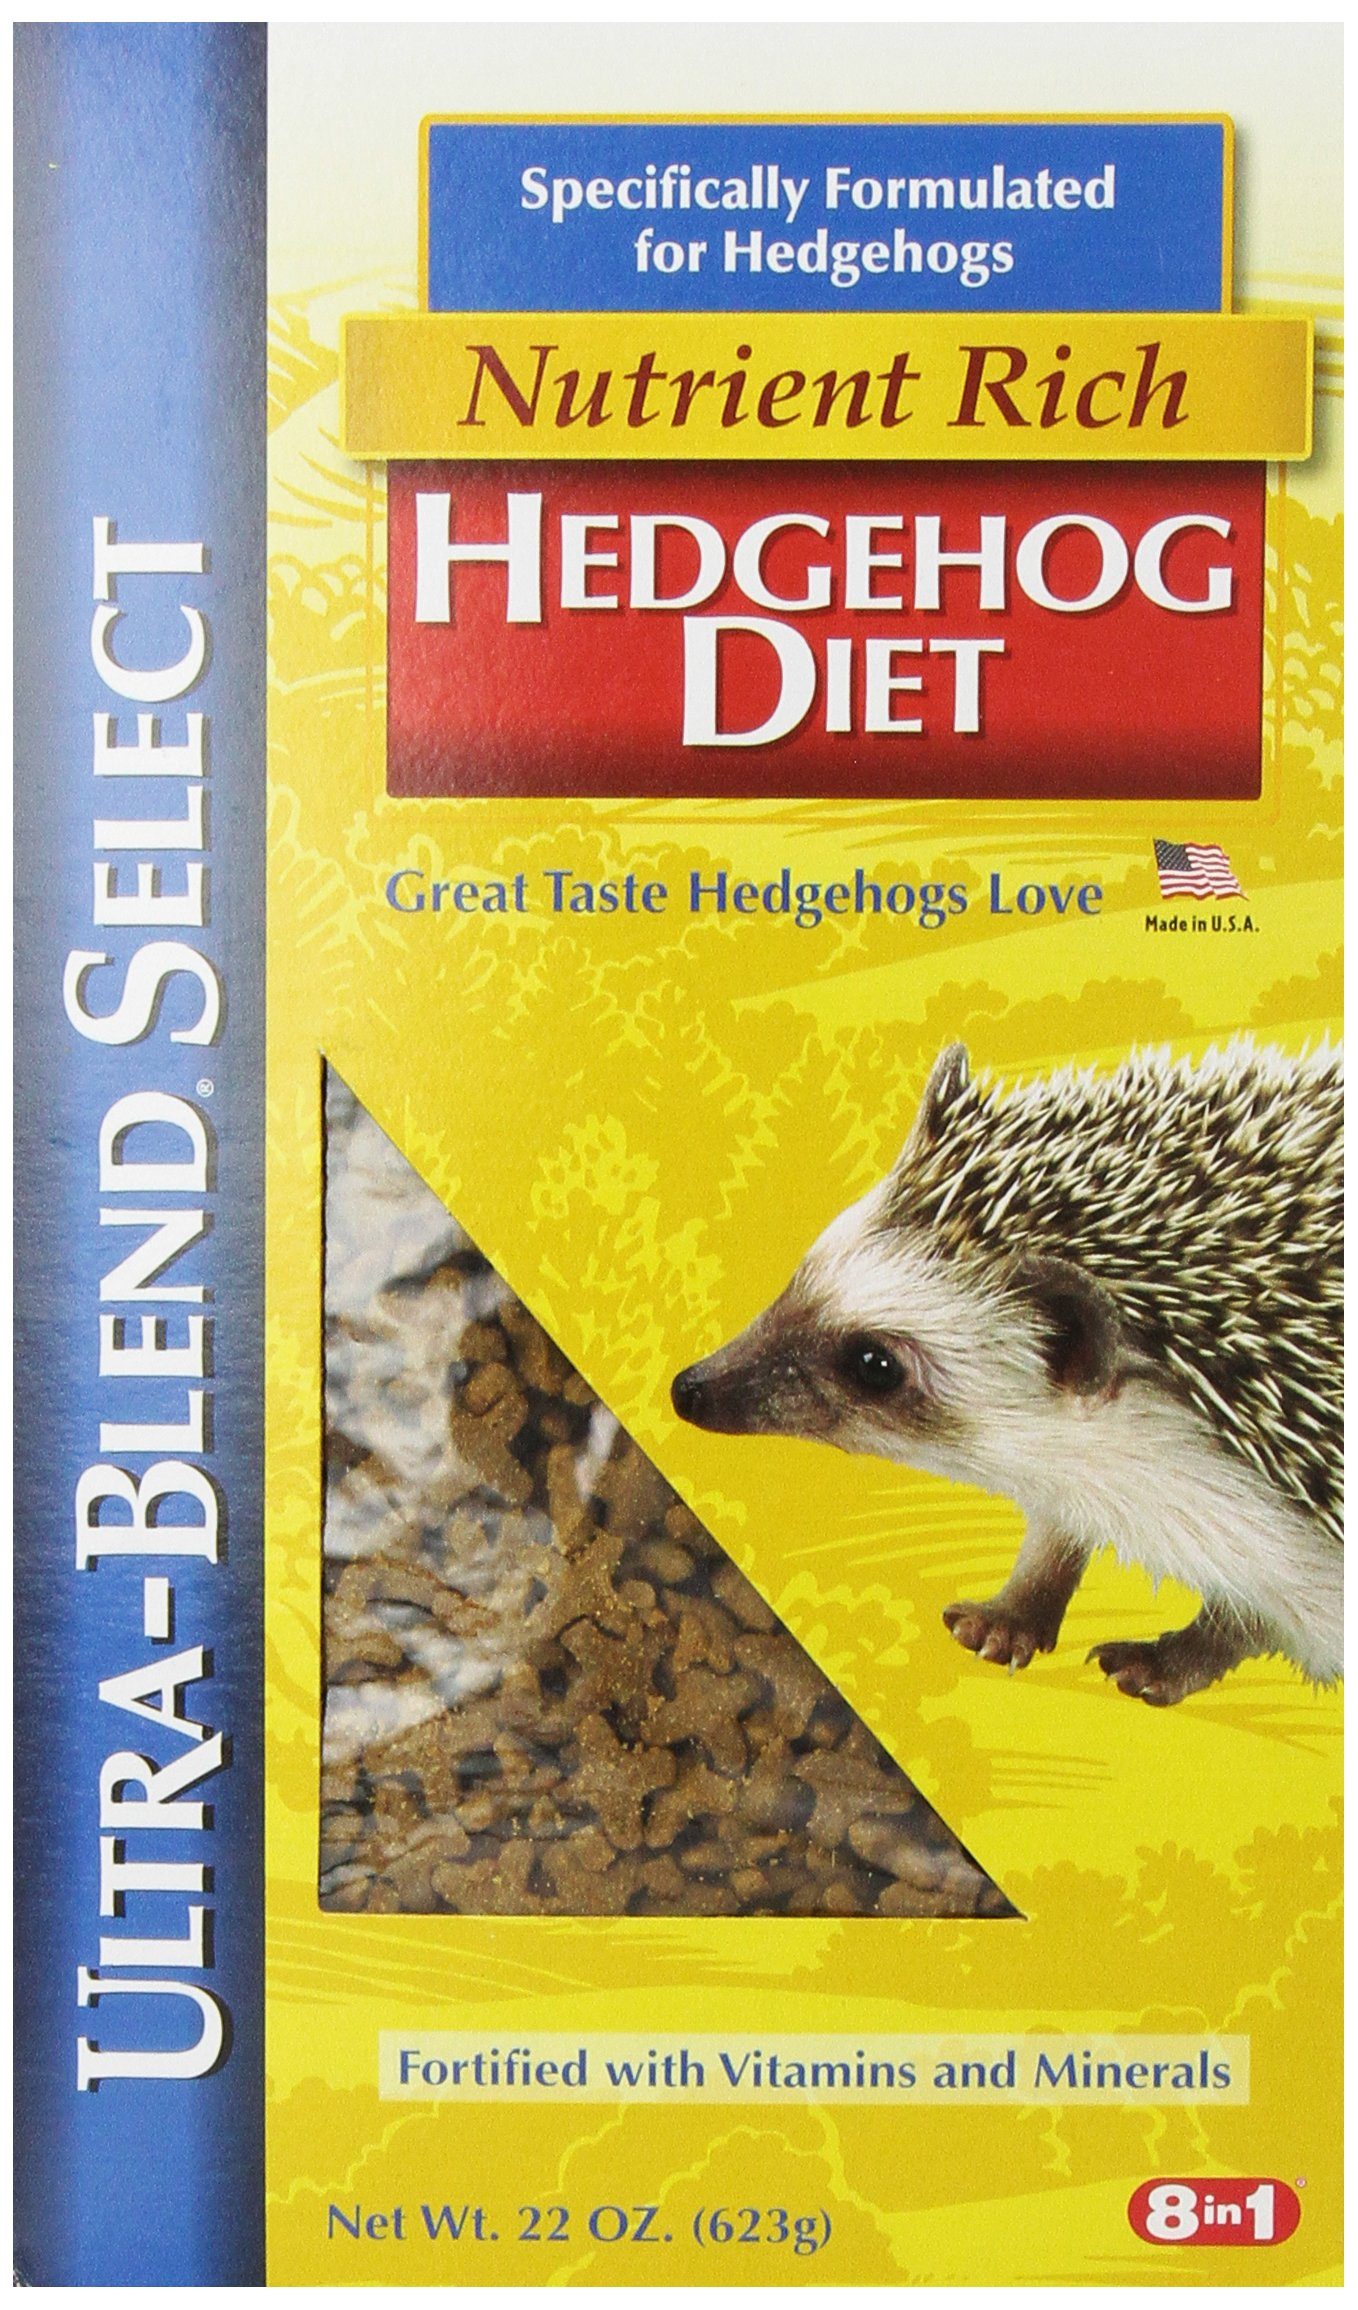 Eight in One (8 In 1) 8 In 1 Ultra-Blend Select Hedgehog Diet, 22-Ounce by Eight in One (8 In 1) (Image #1)